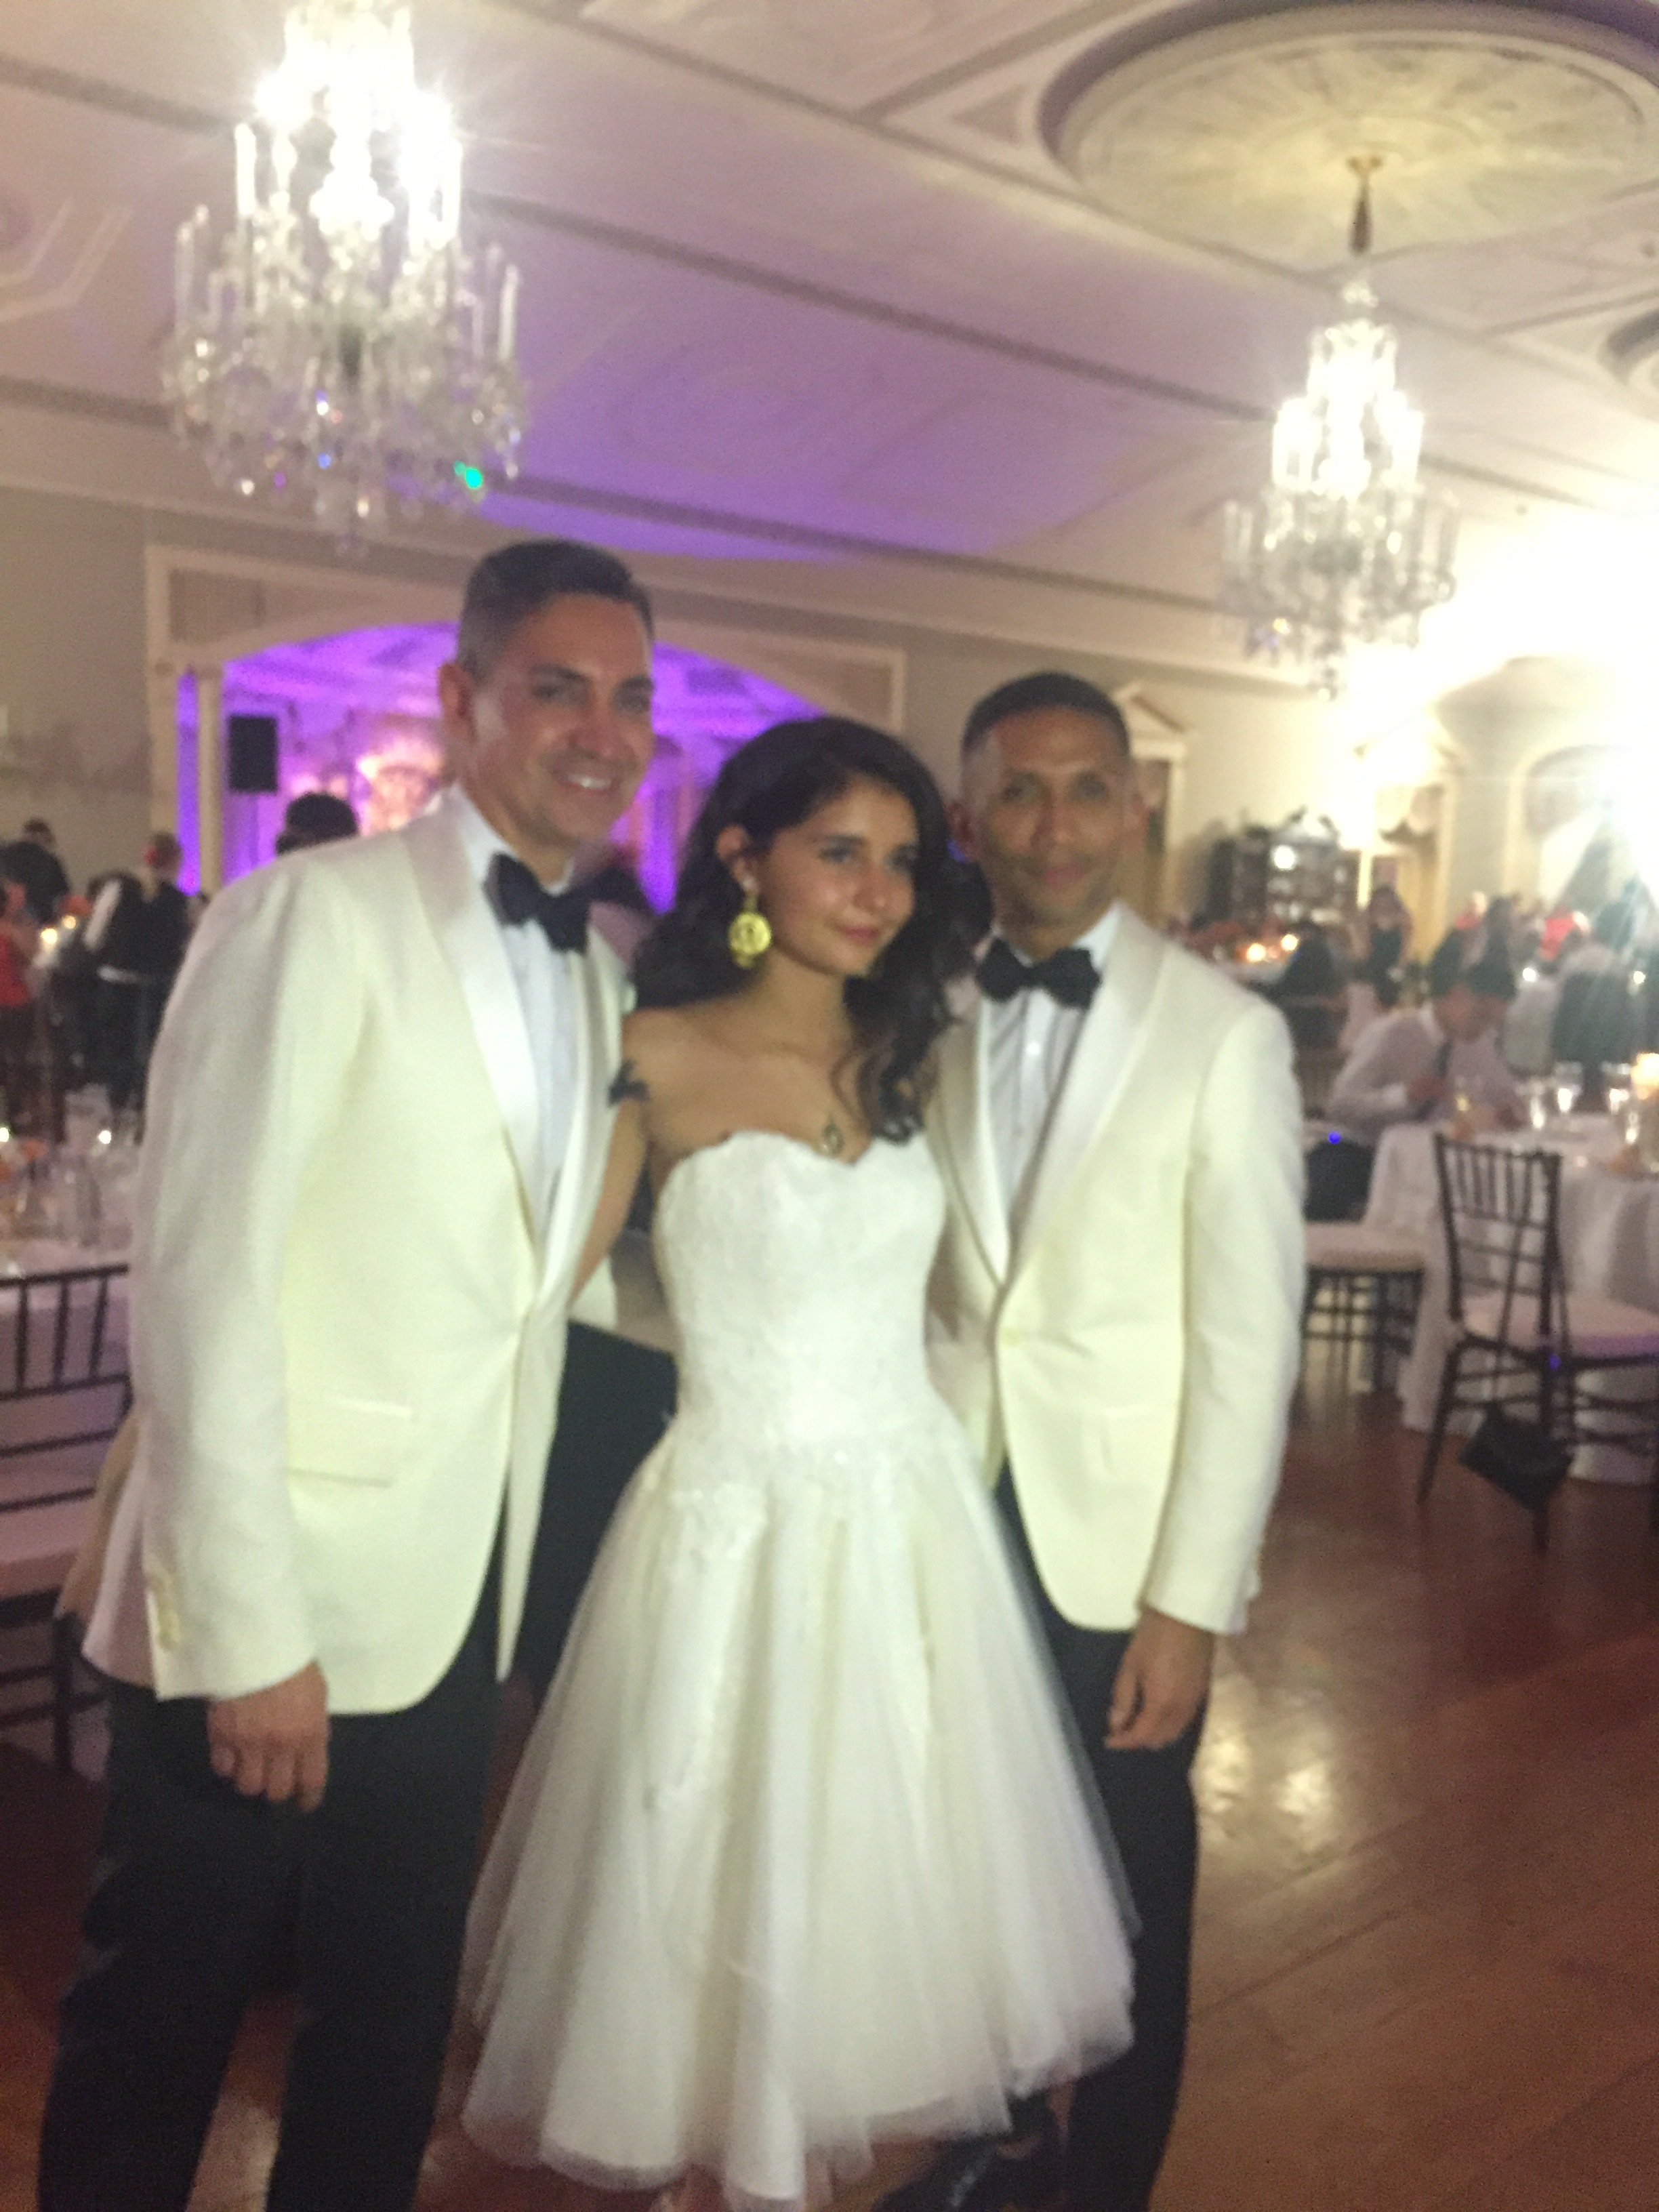 This is Paloma and her two Dad's. She had a big birthday party called a Quinceañera. It was really fancy and there was music and dancing. My mom told me this is a tradition when a Mexican girl turns 15.